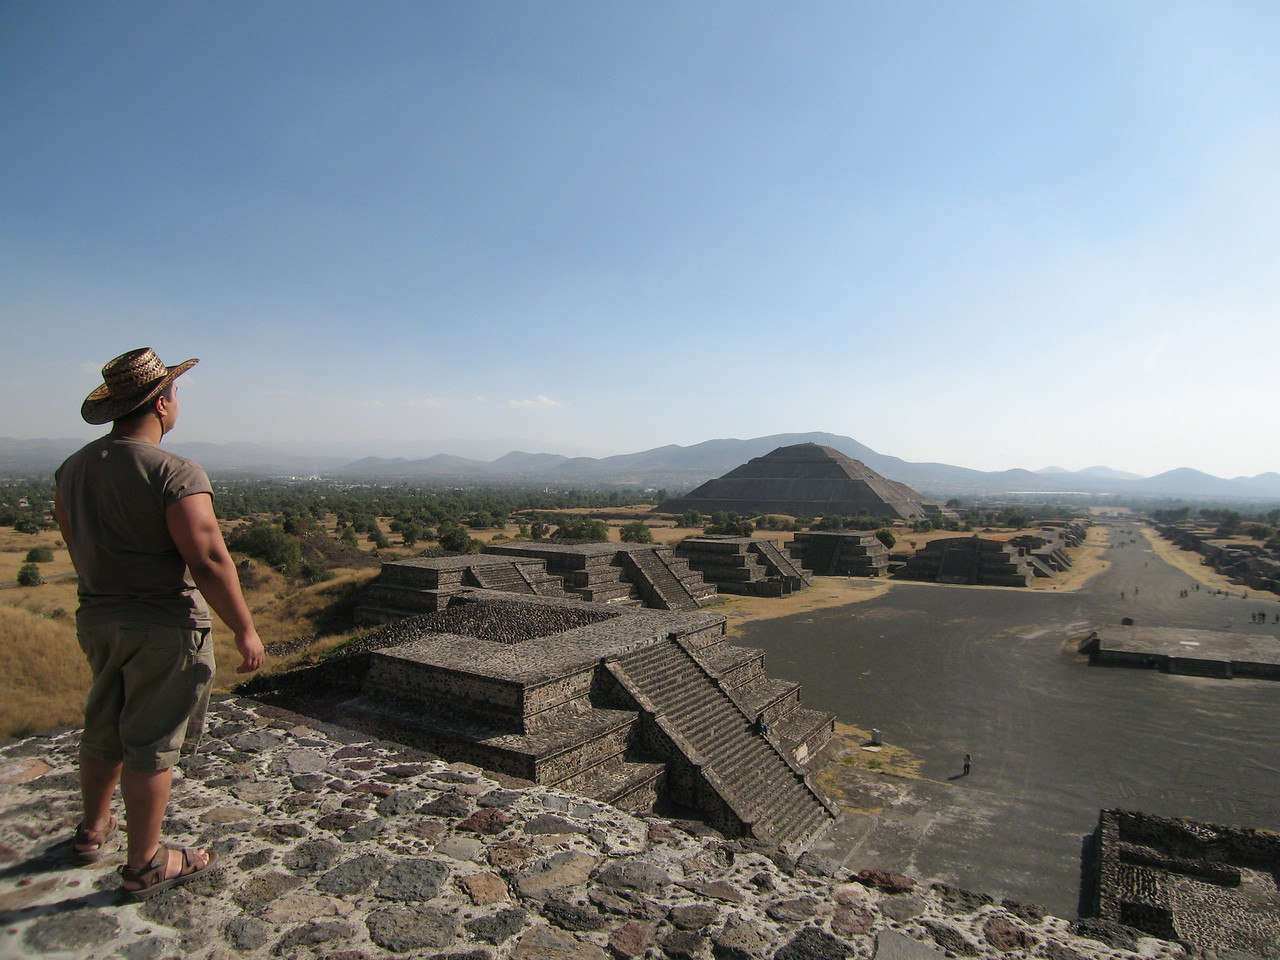 """19.Teotihuacan<br /> <br /> Teotihuacan Gallery:<br />  <a href=""""http://rishiray.smugmug.com/gallery/4140487"""">http://rishiray.smugmug.com/gallery/4140487</a><br />  <a href=""""http://rishiray.smugmug.com/gallery/4141855"""">http://rishiray.smugmug.com/gallery/4141855</a><br /> <br /> Hillman Wonders Page<br />  <a href=""""http://www.hillmanwonders.com/teotihuacan/teotihuacan.htm#_vtop"""">http://www.hillmanwonders.com/teotihuacan/teotihuacan.htm#_vtop</a>"""